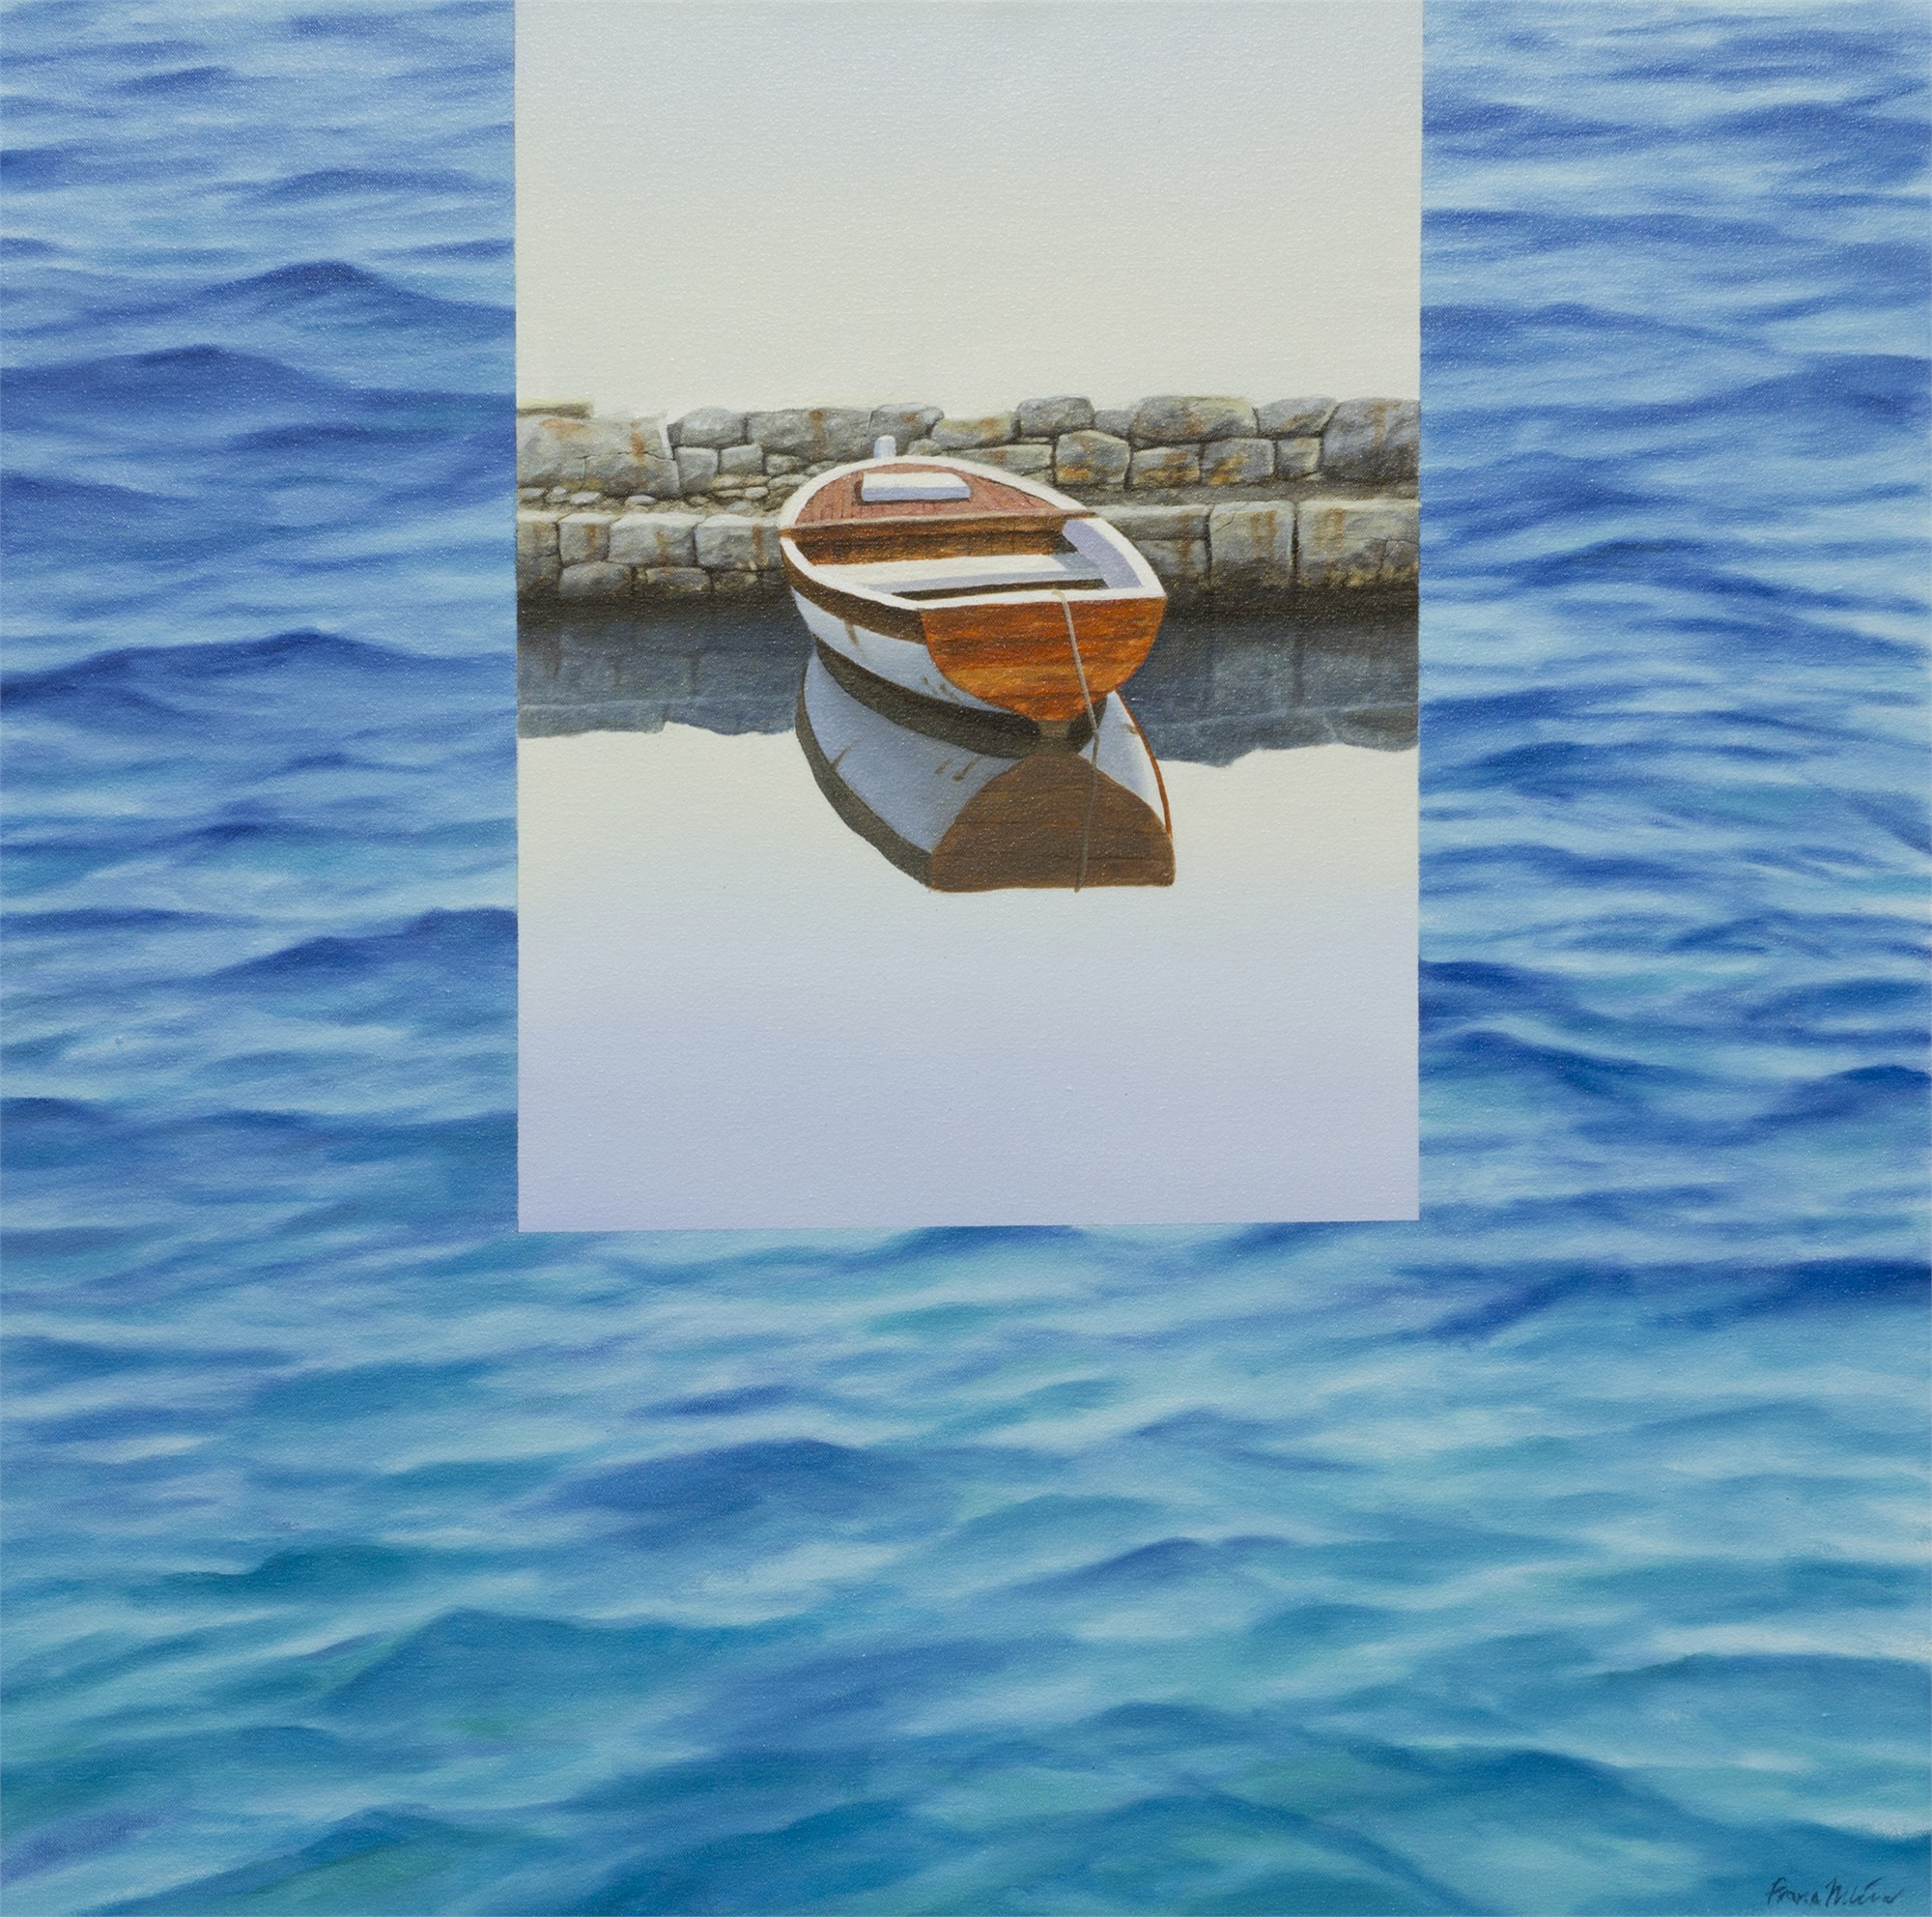 On the Water - YY, 2013, 2018 by Frane Mlinar